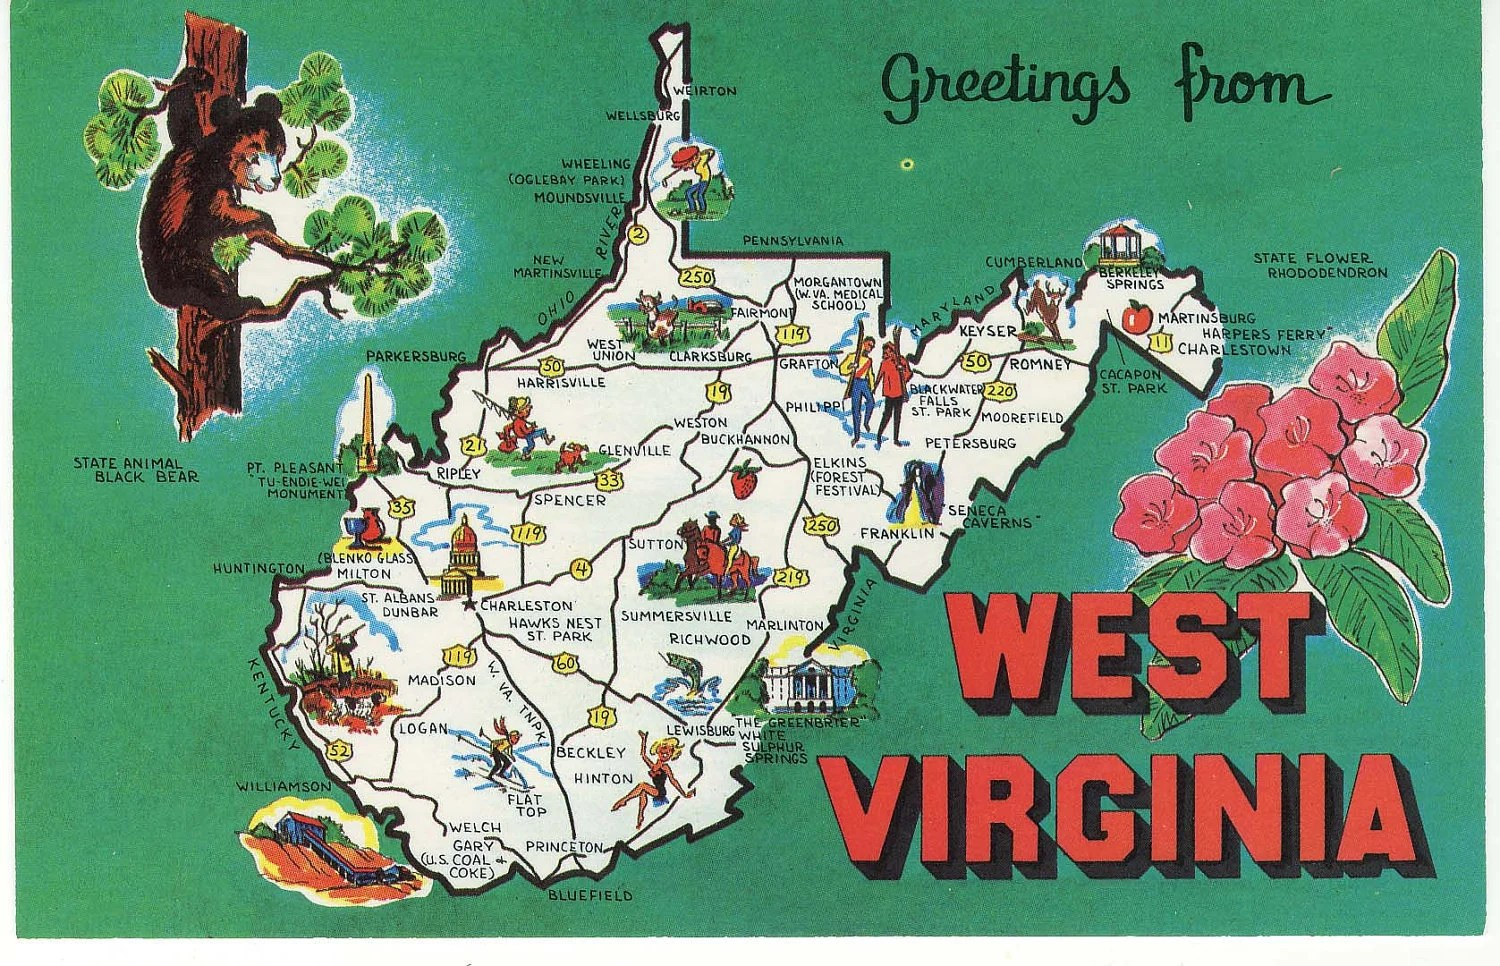 Vintage Postcard - Greeting from West Virginia - State Bear - State Flower - thevintagemode